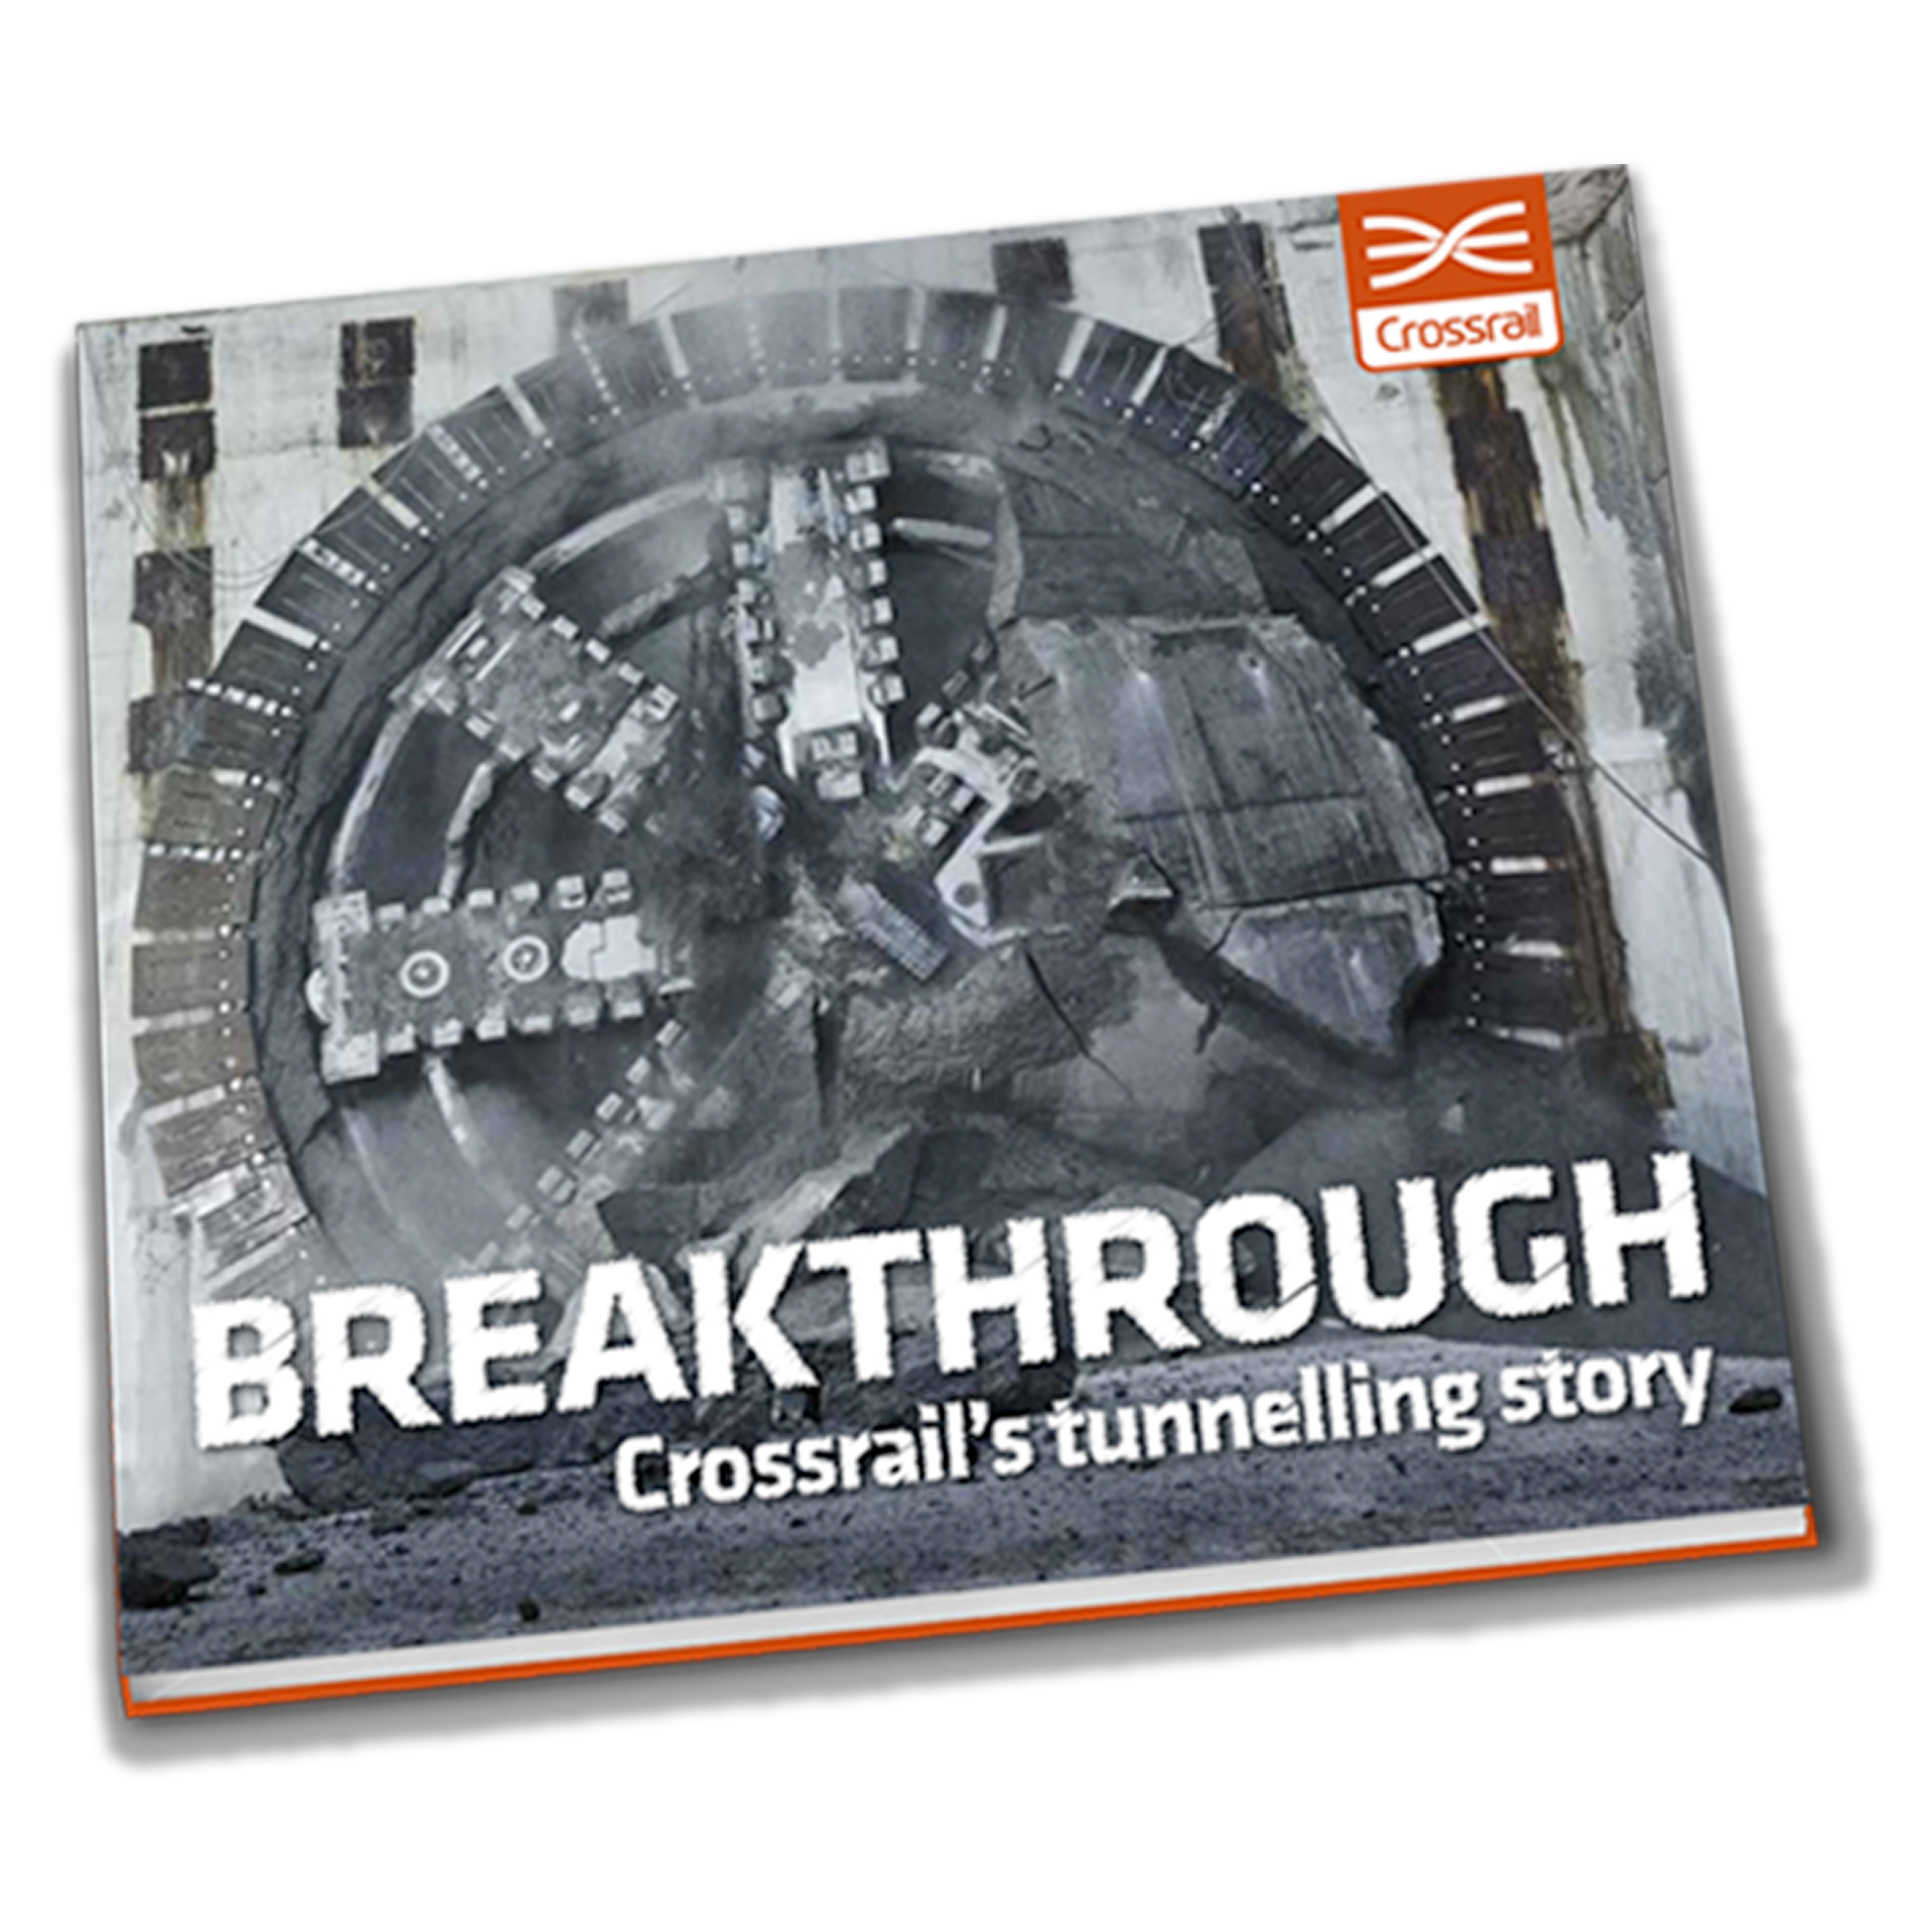 Breakthrough: Crossrail's Tunnnelling Story_book cover